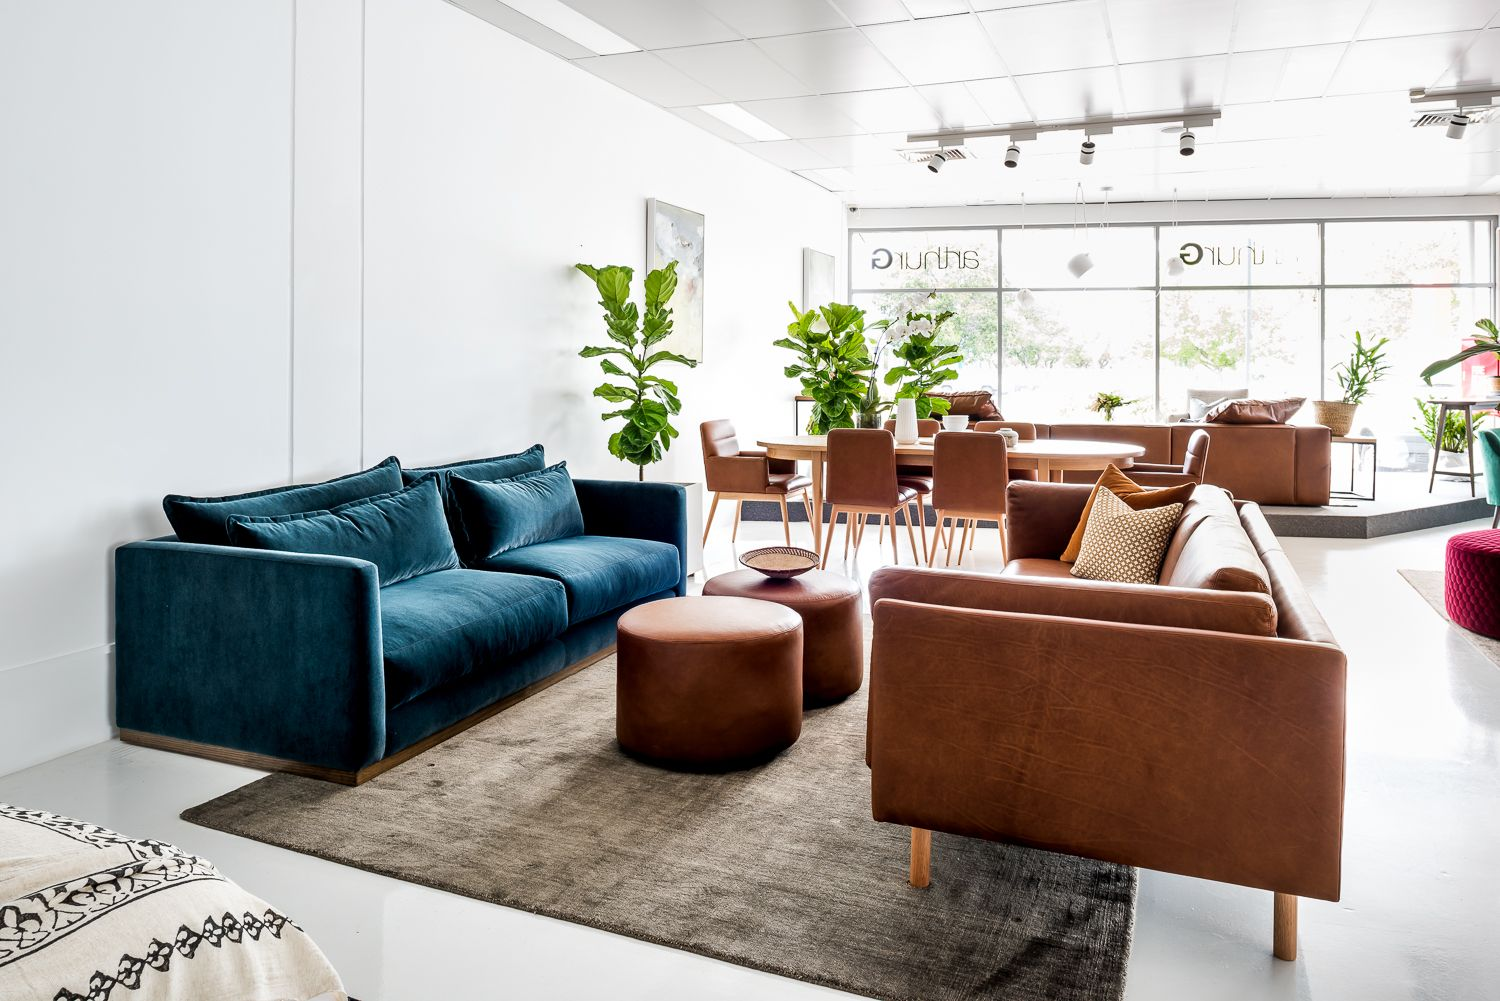 living room furniture perth australia modern lounge chairs the spencer and conrad sofas with arty ottomans in all manufactured to order